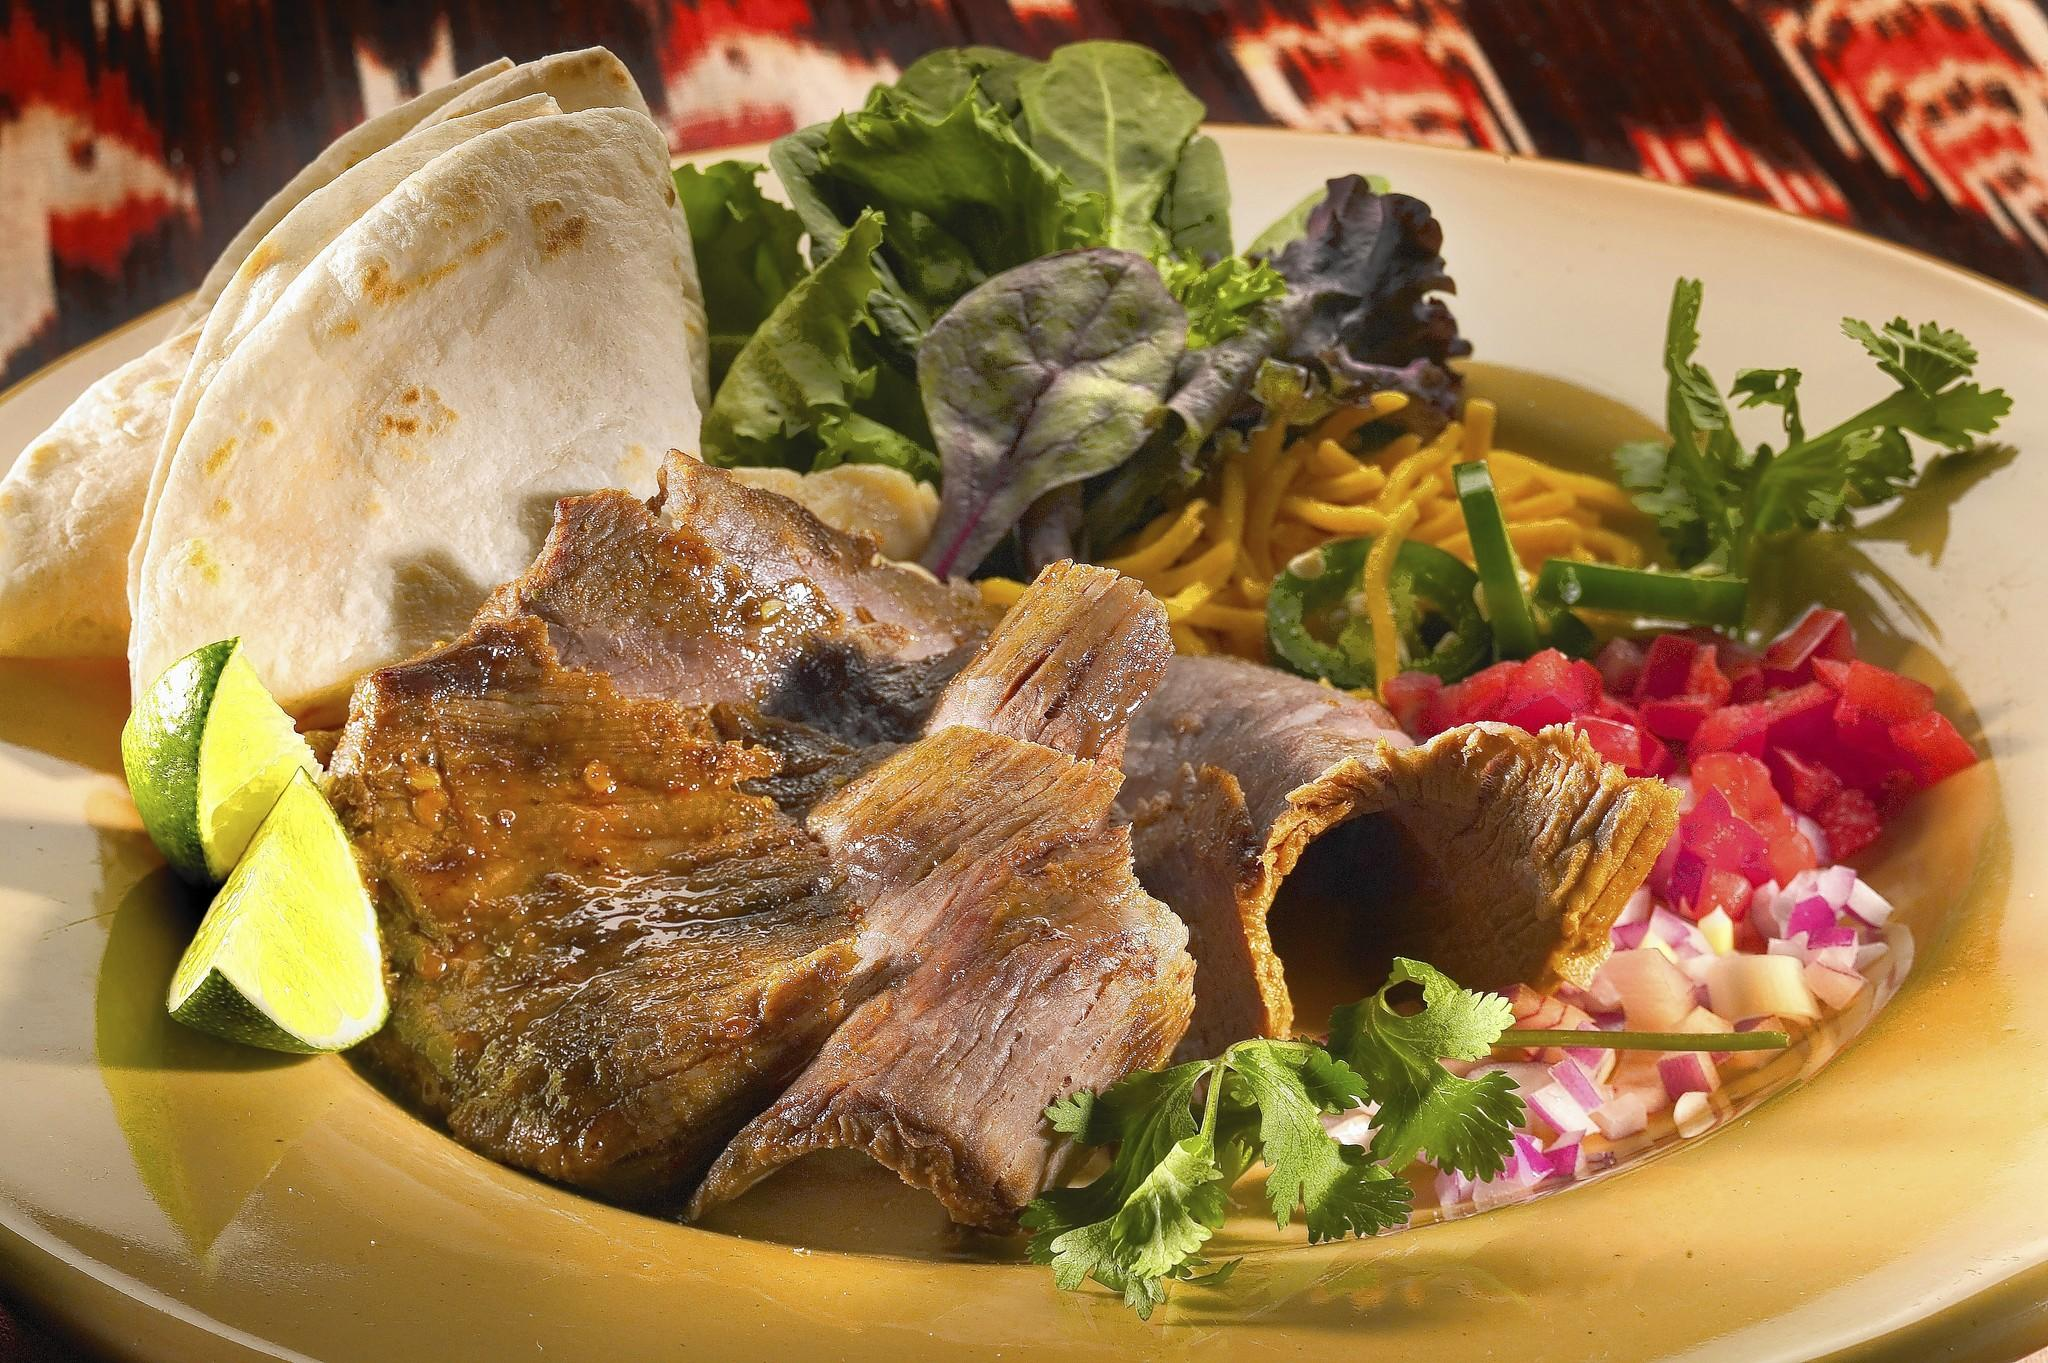 Chipotle-orange flank steak. Wrap the flank steak in warm tortillas and top with chopped onion or tomato, salsa, cilantro, grated cheese, avocado, a squirt of lime juice.